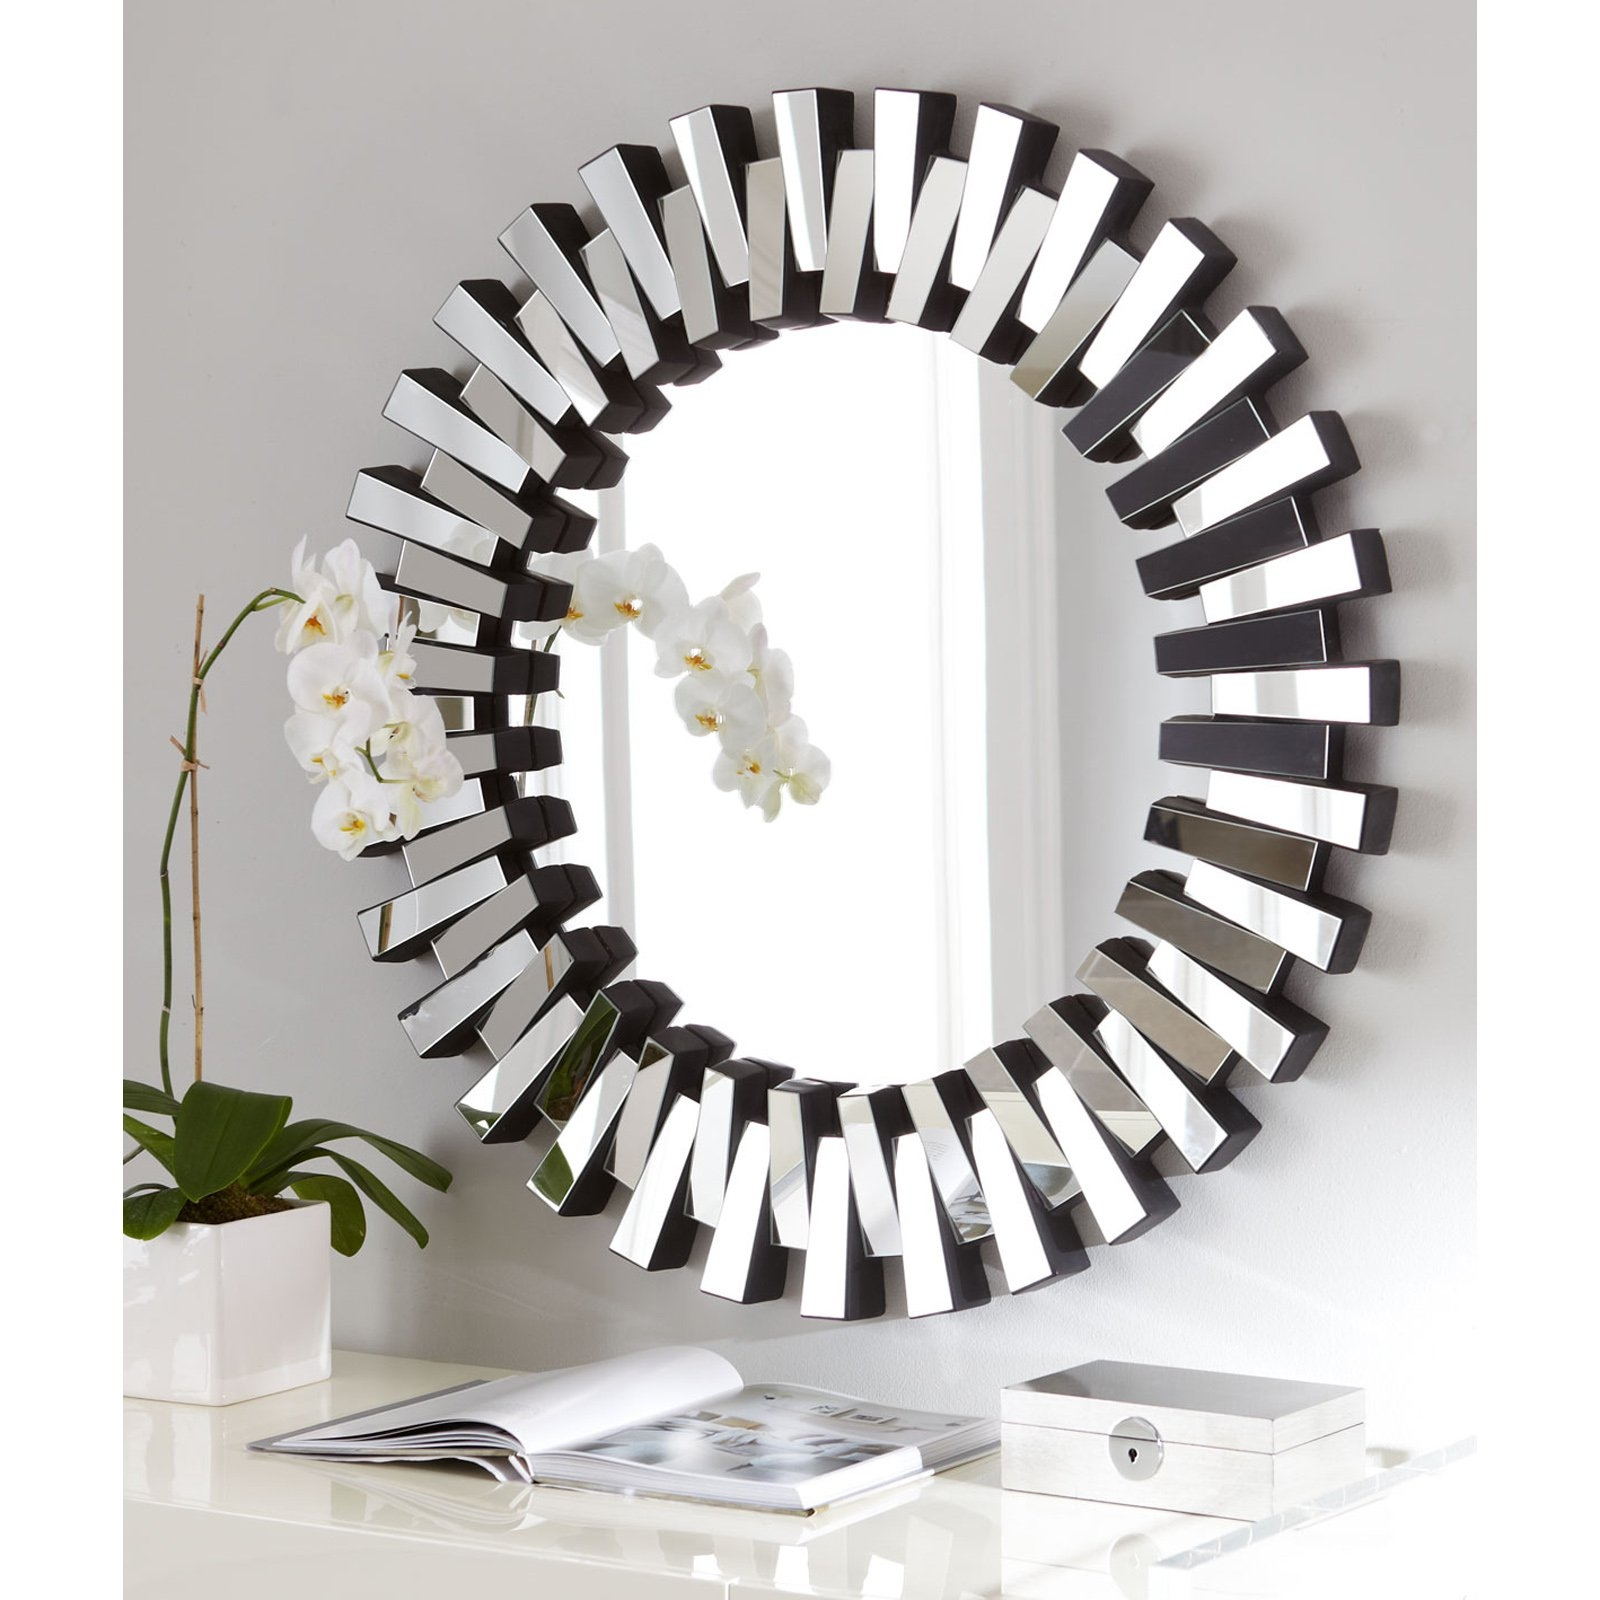 Afina Modern Luxe Round Wall Mirror 36 In Mirrors At Hayneedle Inside Mirror Circles For Walls (Image 1 of 15)